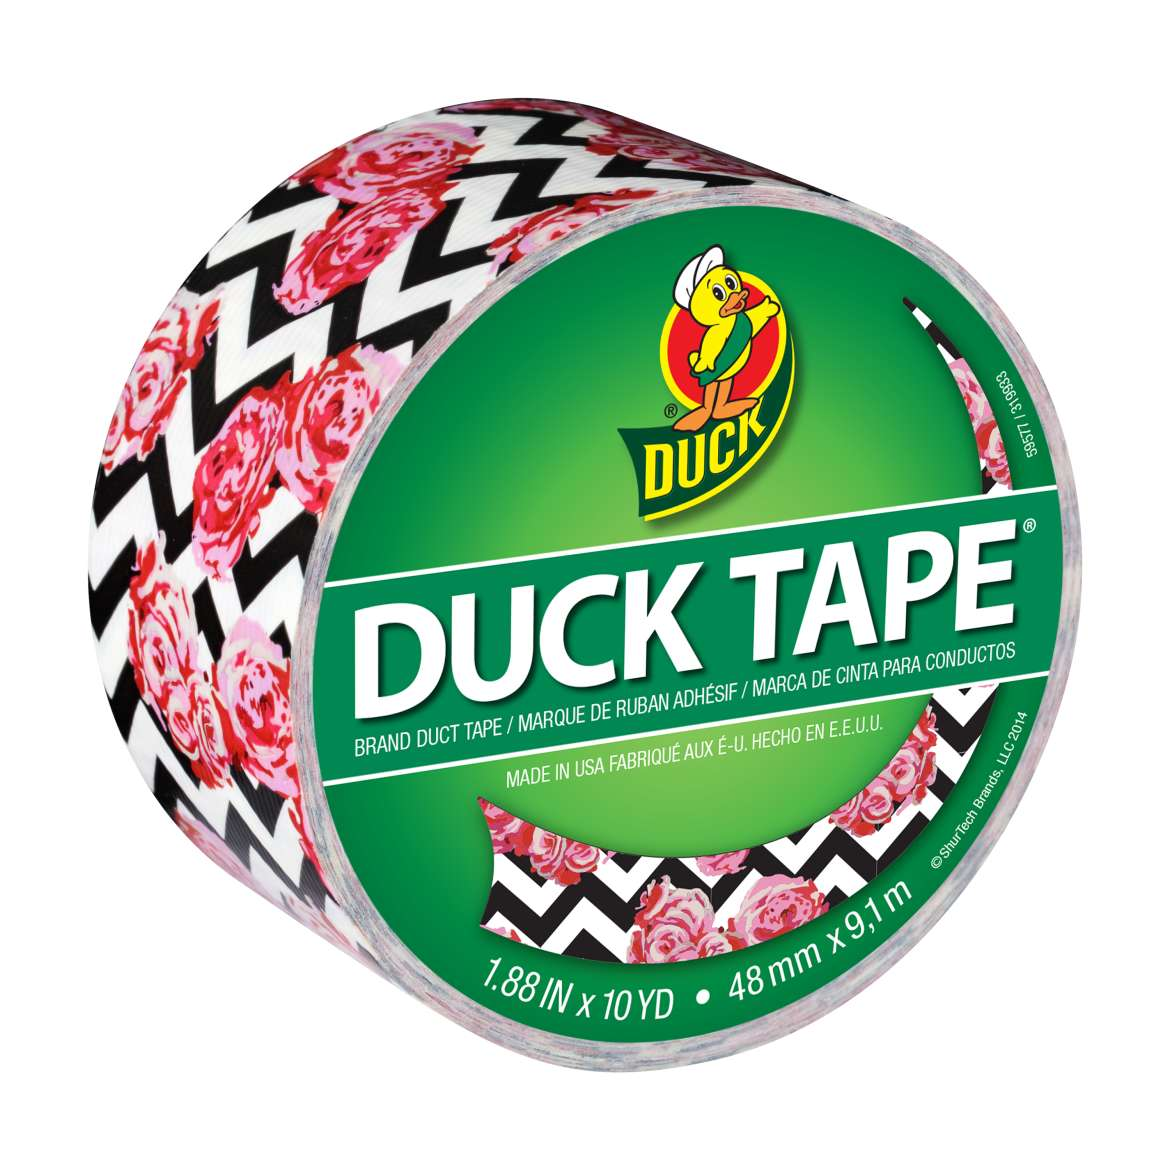 Printed Duck Tape® Brand Duct Tape - Flower Chevron, 1.88 in. x 10 yd. Image